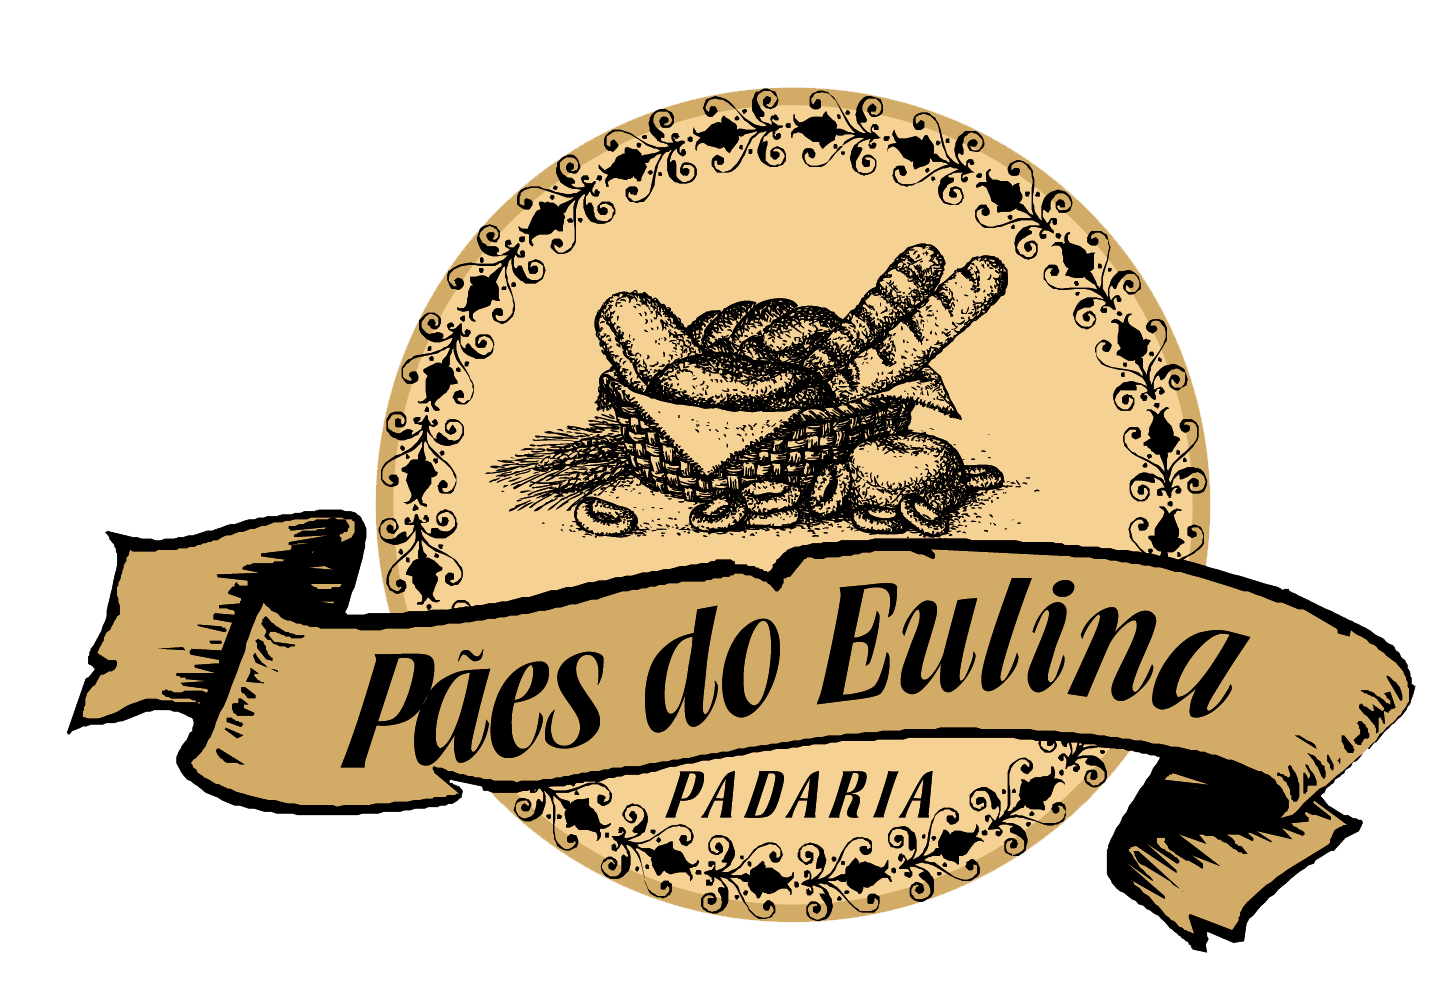 Pães do Eulina